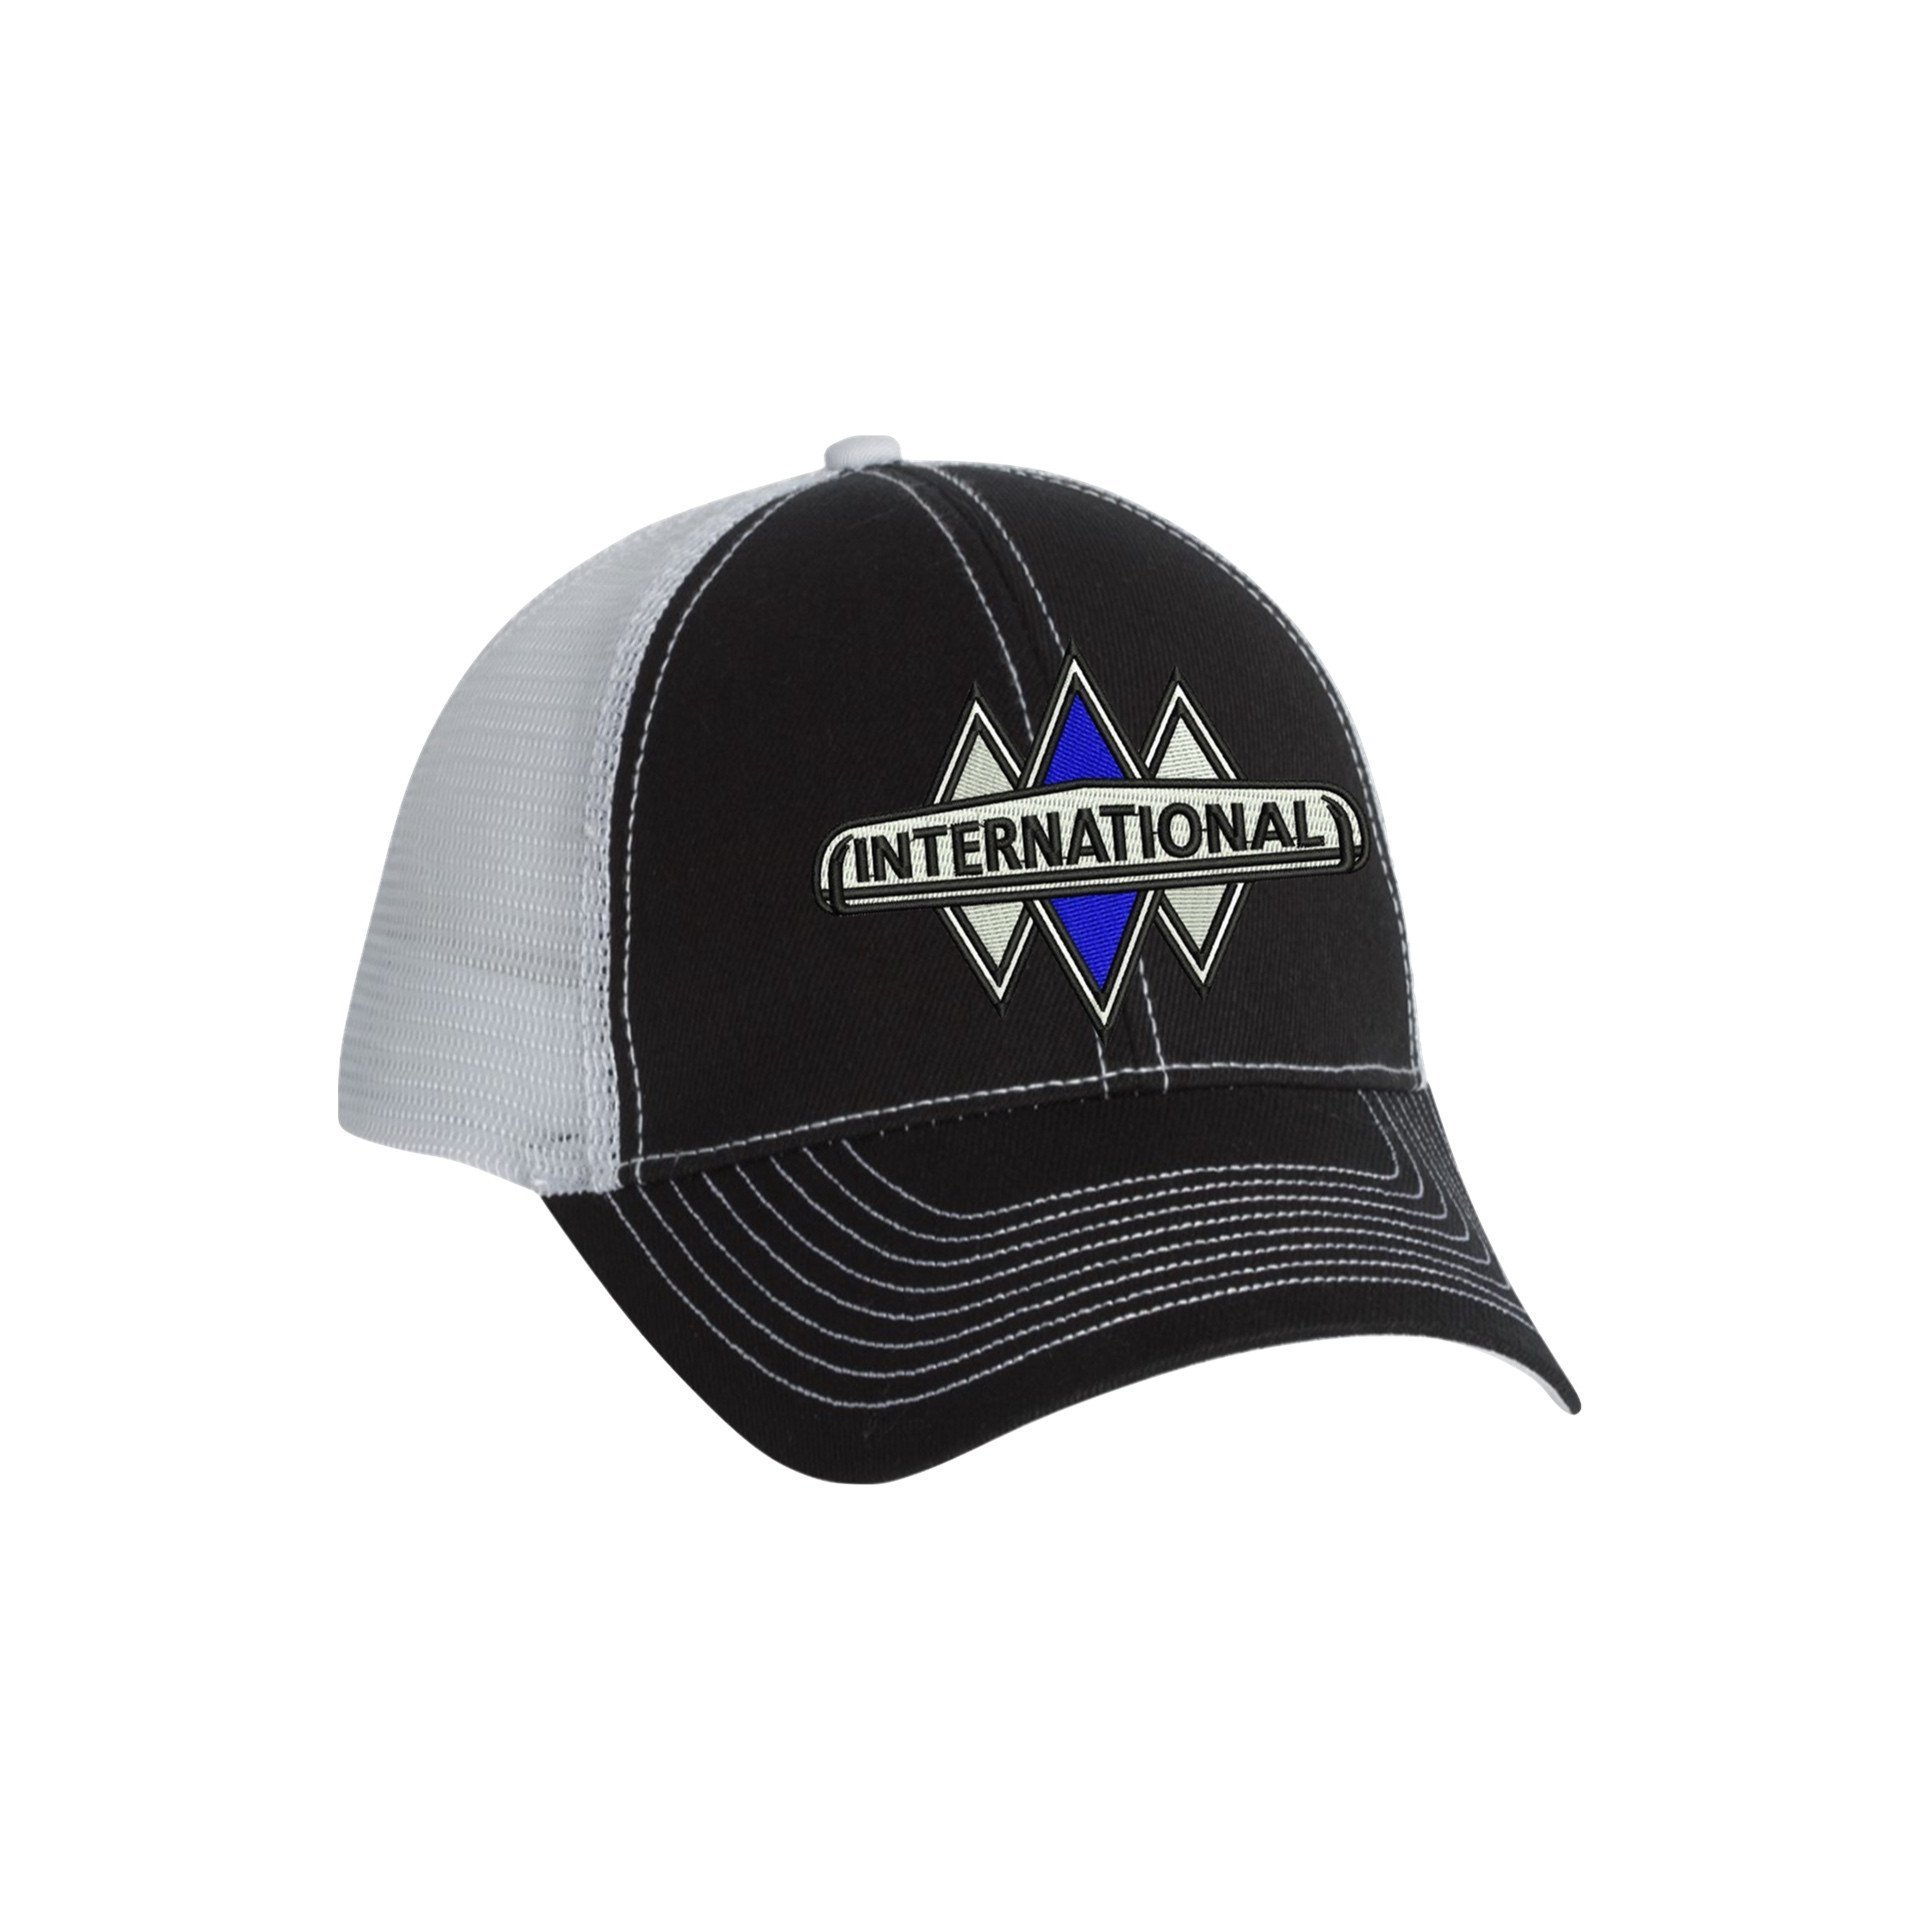 Triple Diamond Fitted Cap Hats International Truck Fitted Caps